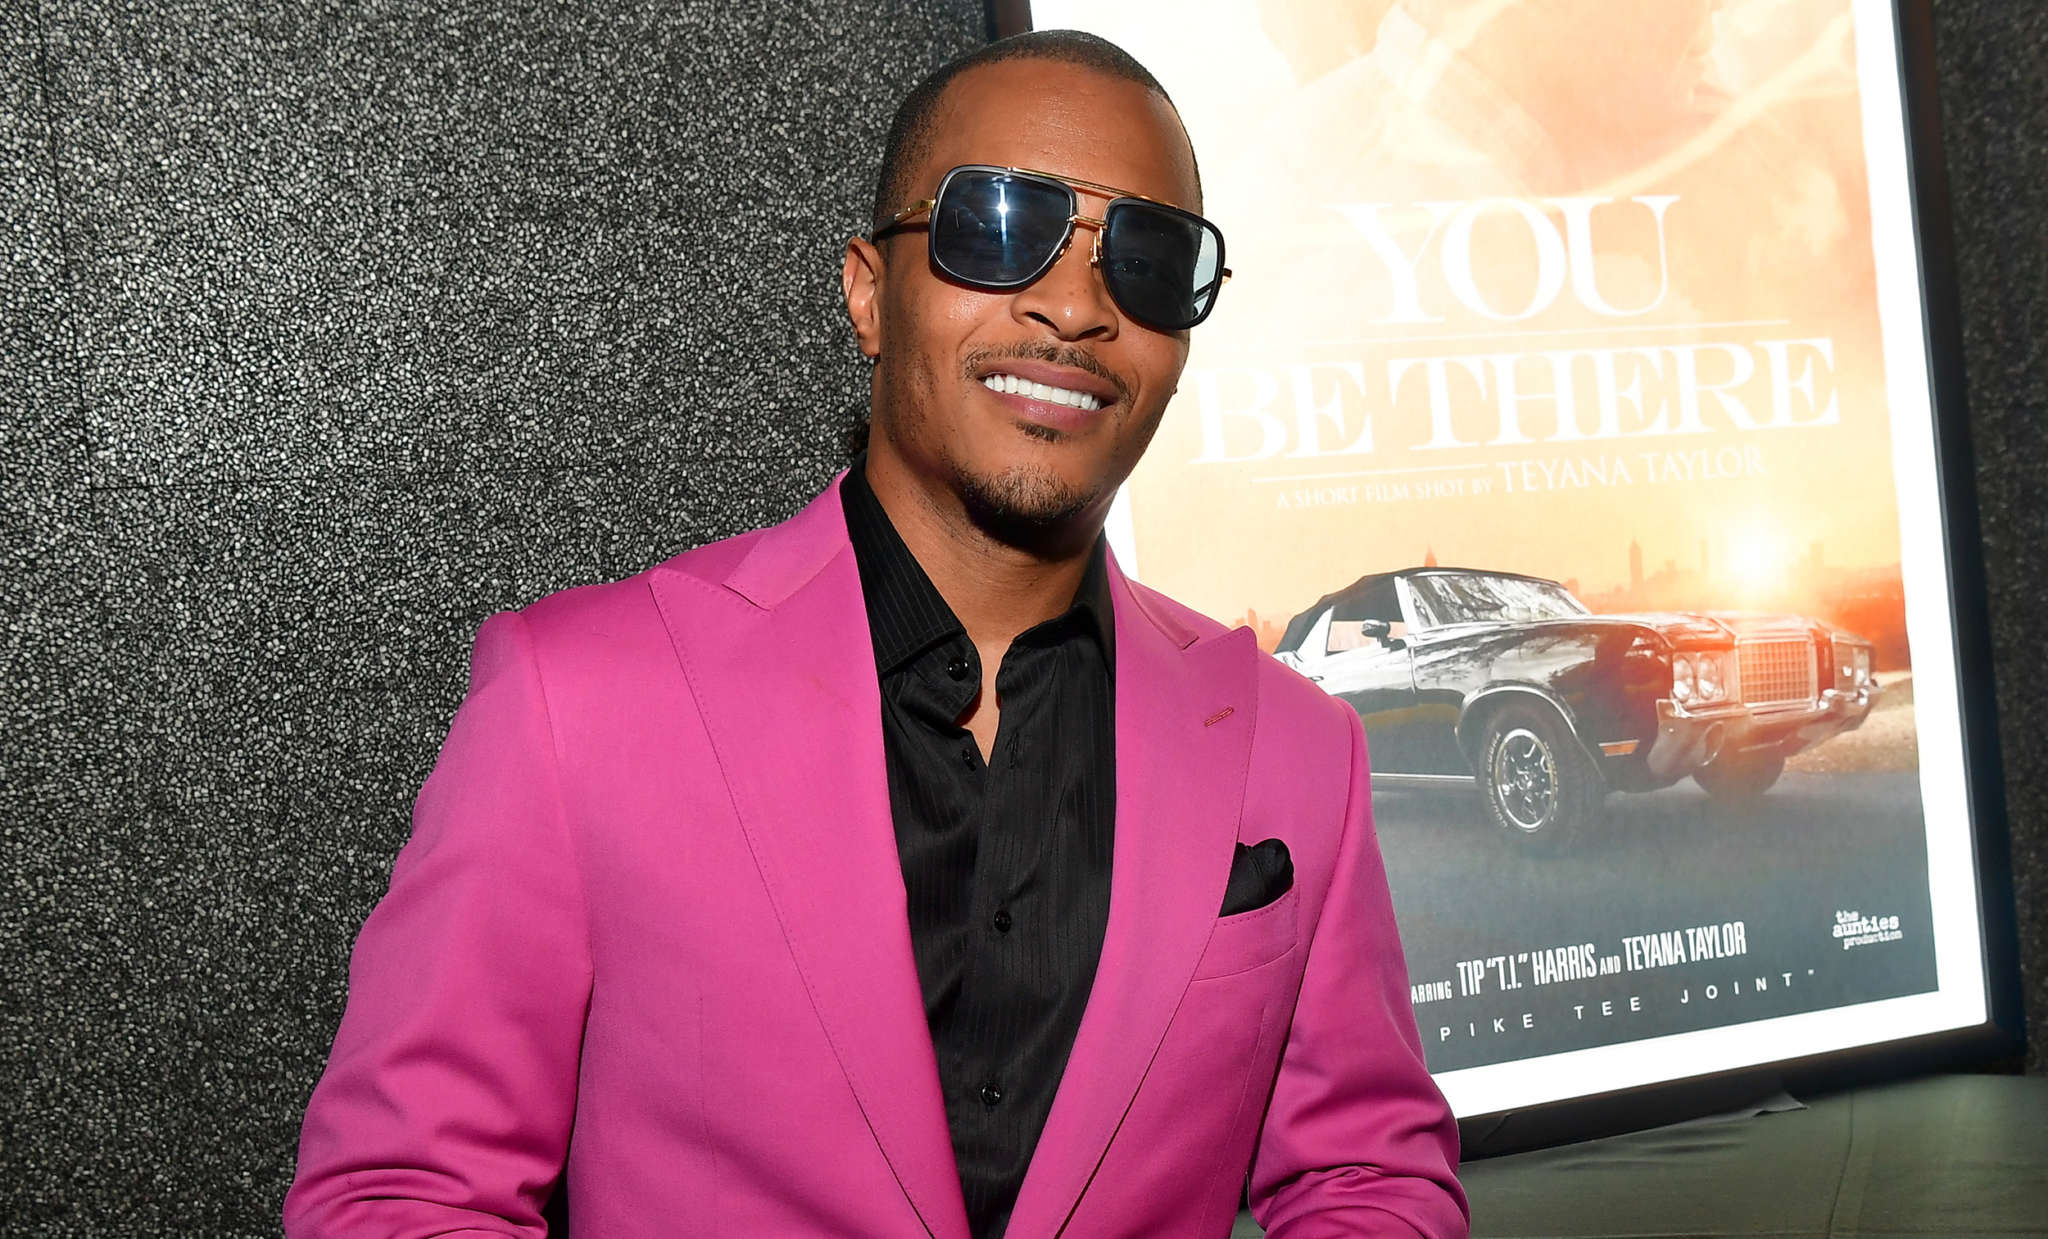 T.I.'s Recent Post Outrages Fans - Check Out The Message He Shared In The Memory Of Brandon Bernard